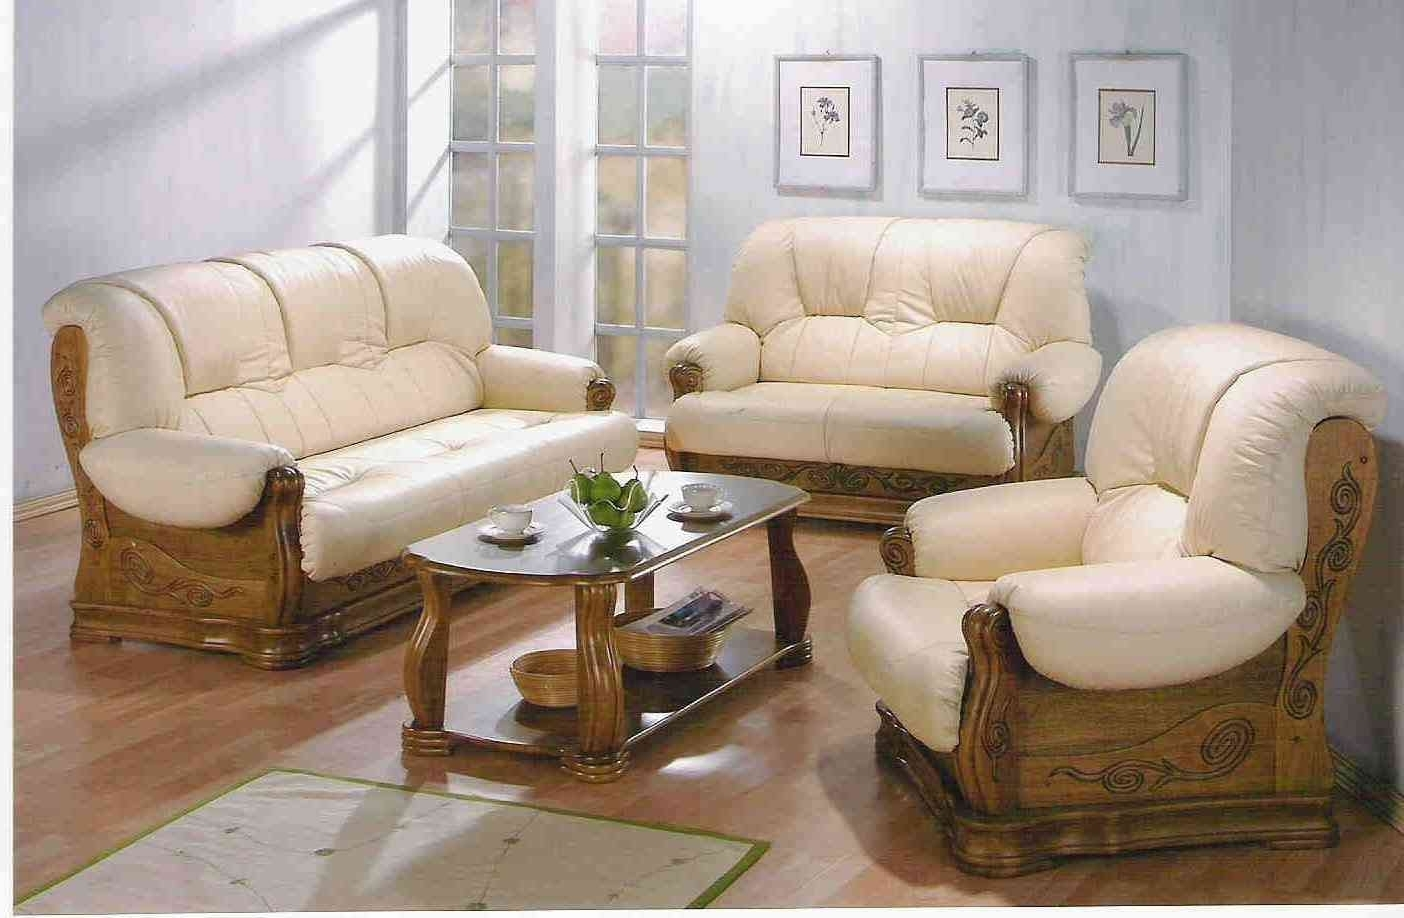 Preferred Casual Sofas And Chairs Regarding Chairs : Traditional Wooden Sofa Set Designs Couch Traditional (View 14 of 20)